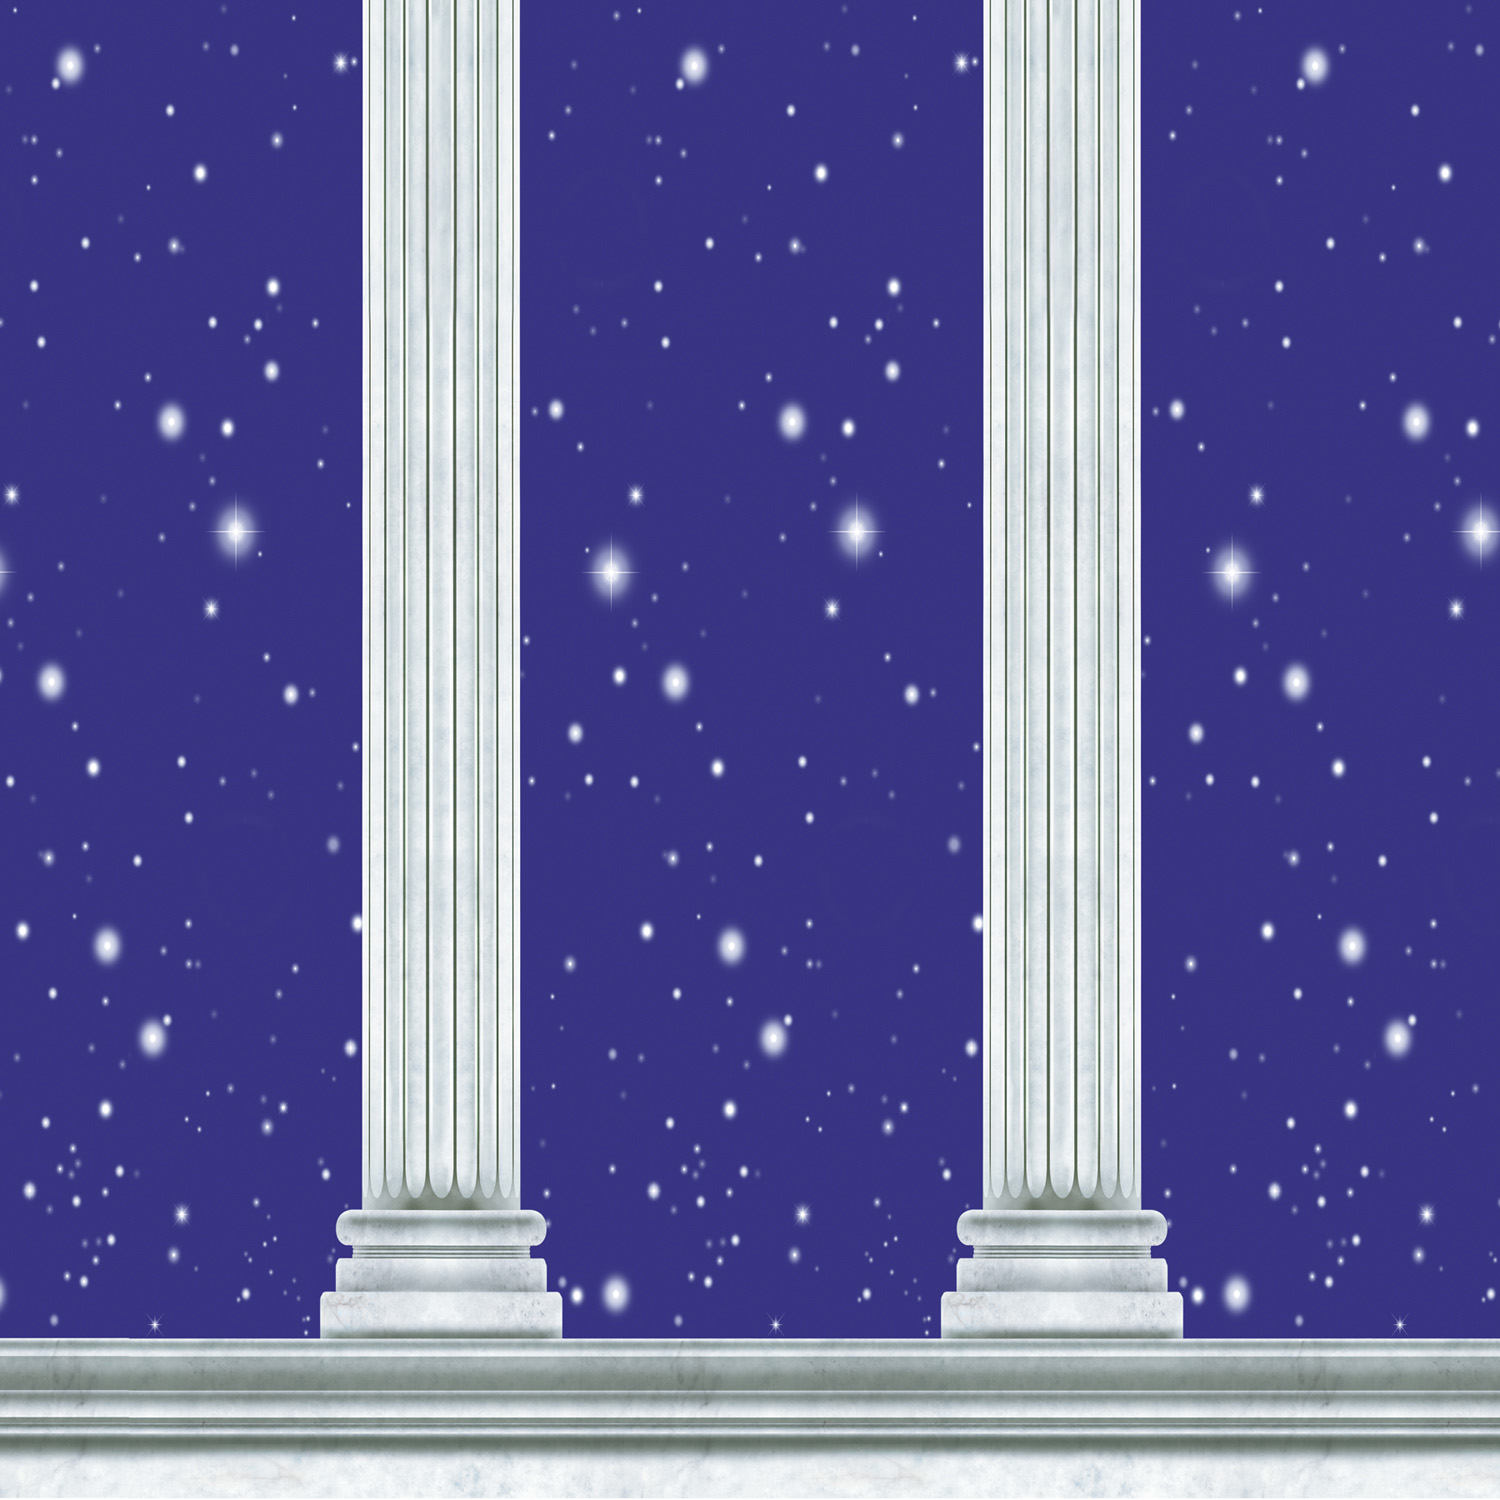 backdrop with white columns in front of a dark blue sky with stars